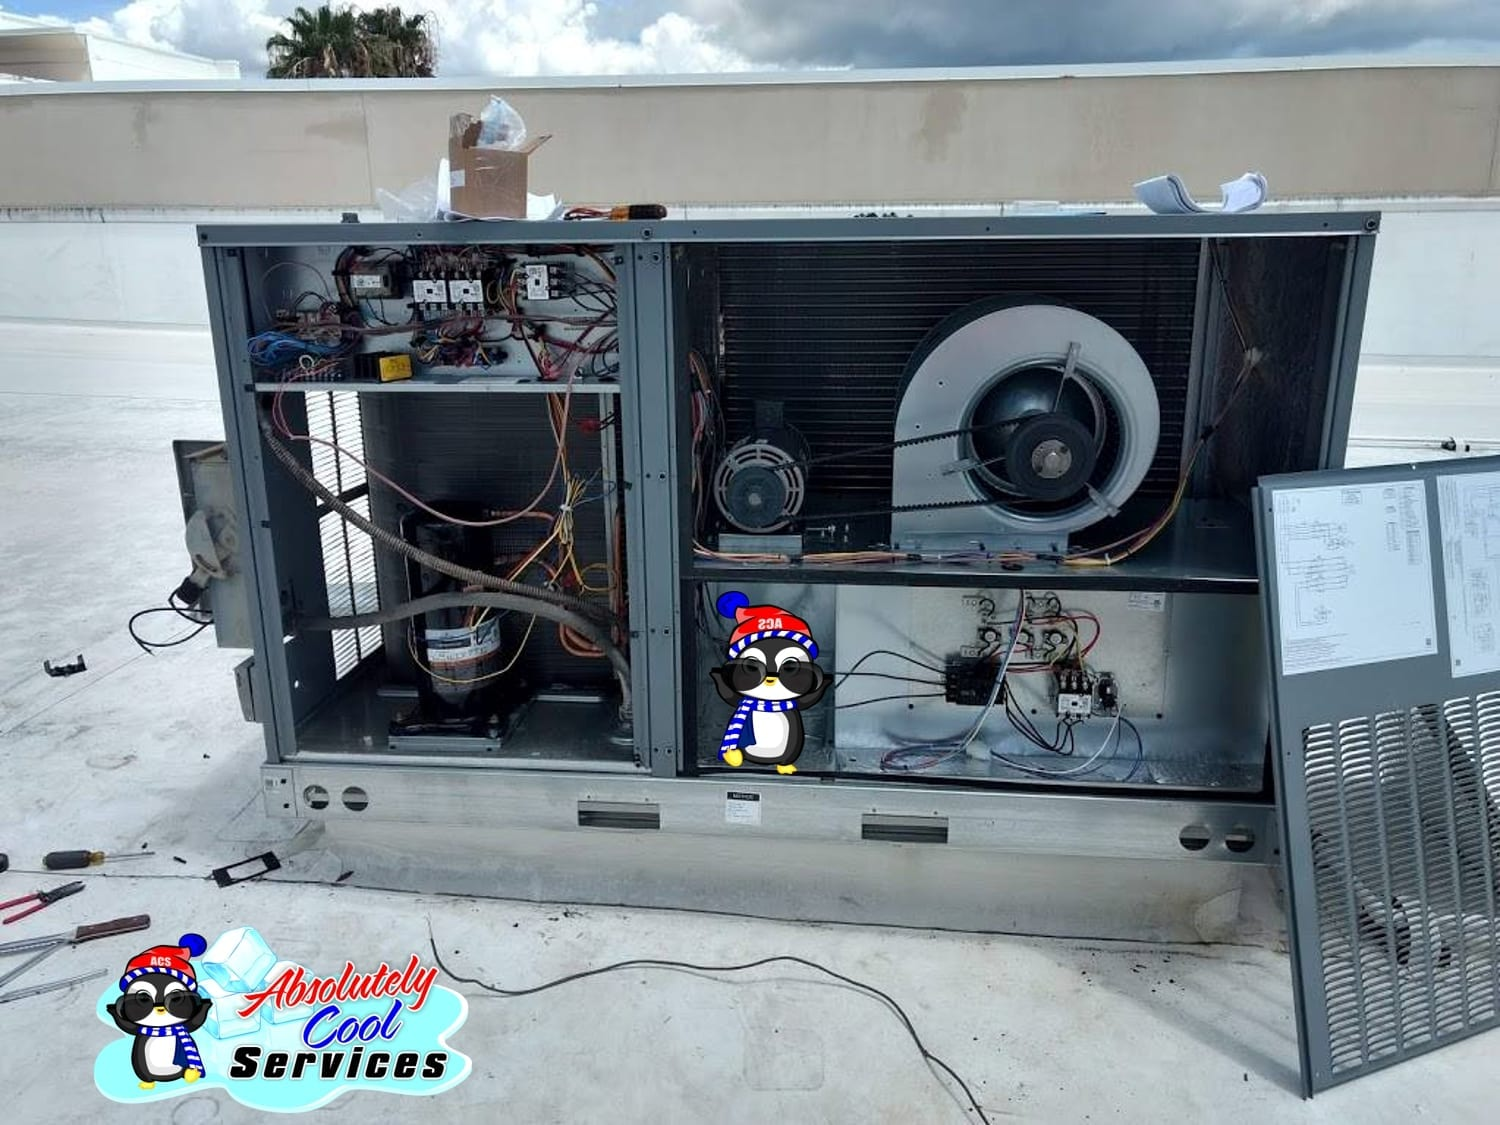 Roof Air Conditioning | Air Conditioning Diagnosis Company near Palm Beach Gardens